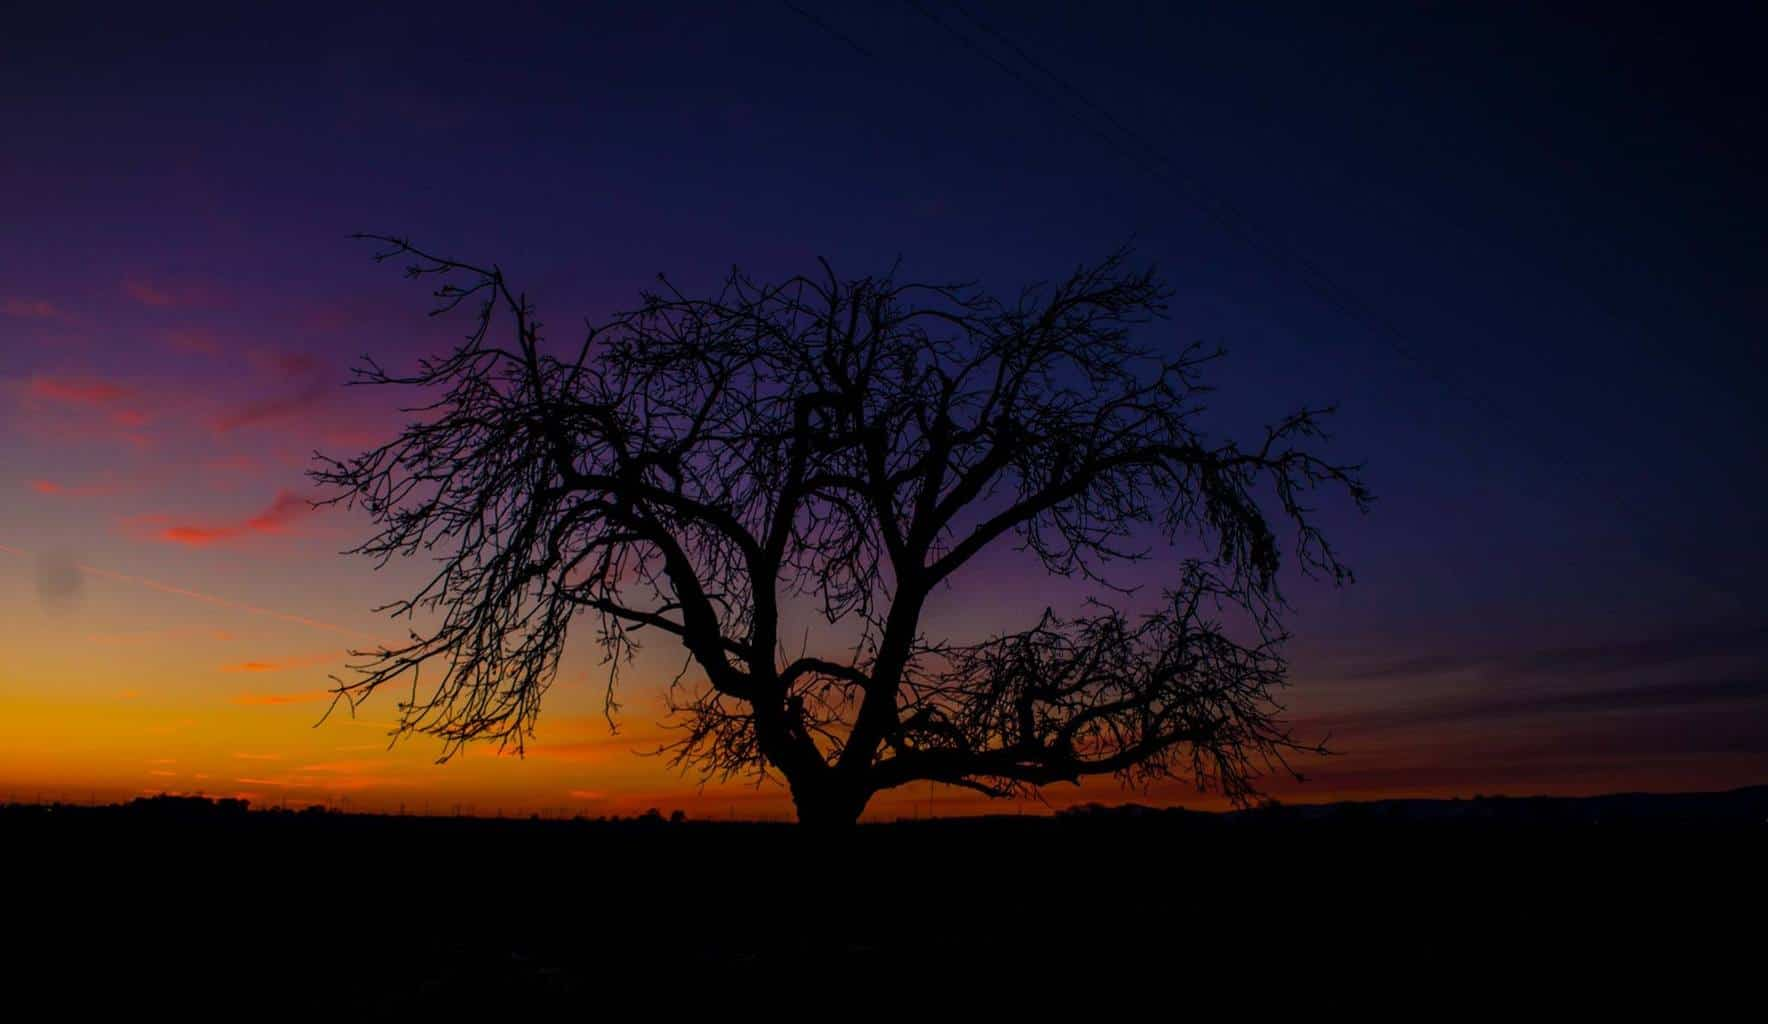 Thank you for accepting me to the group. I shot this image this morning at dusk. San Francisco, East Bay area